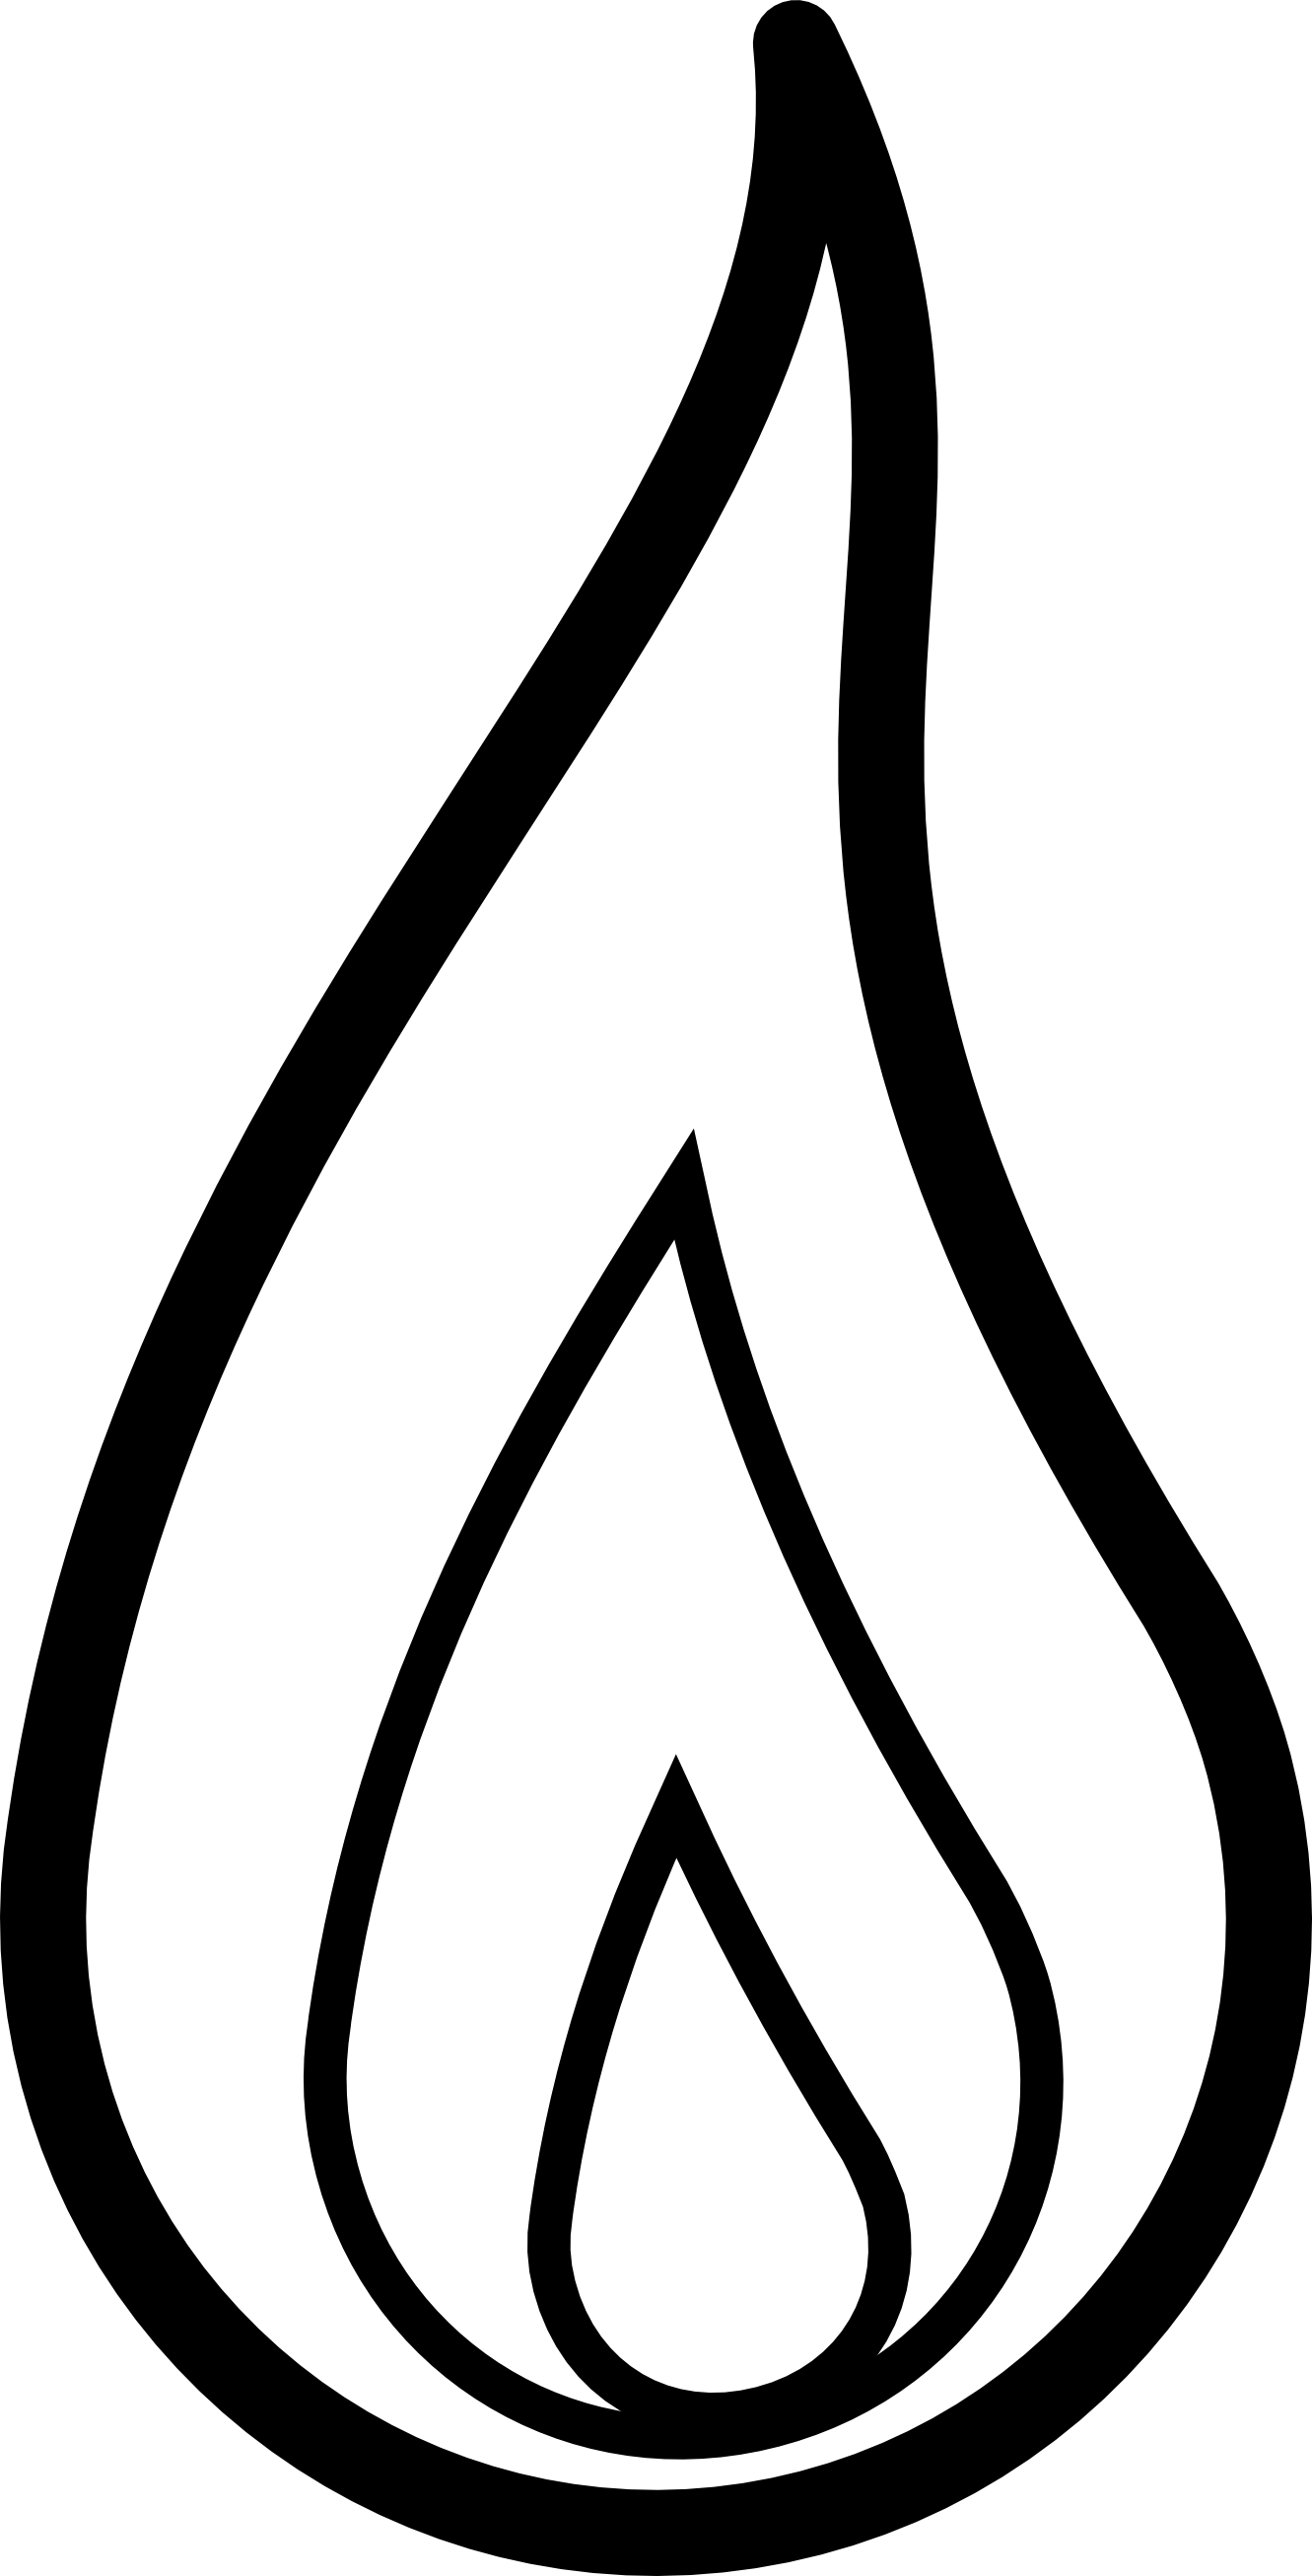 Fire black and white. Clipart flames pdf